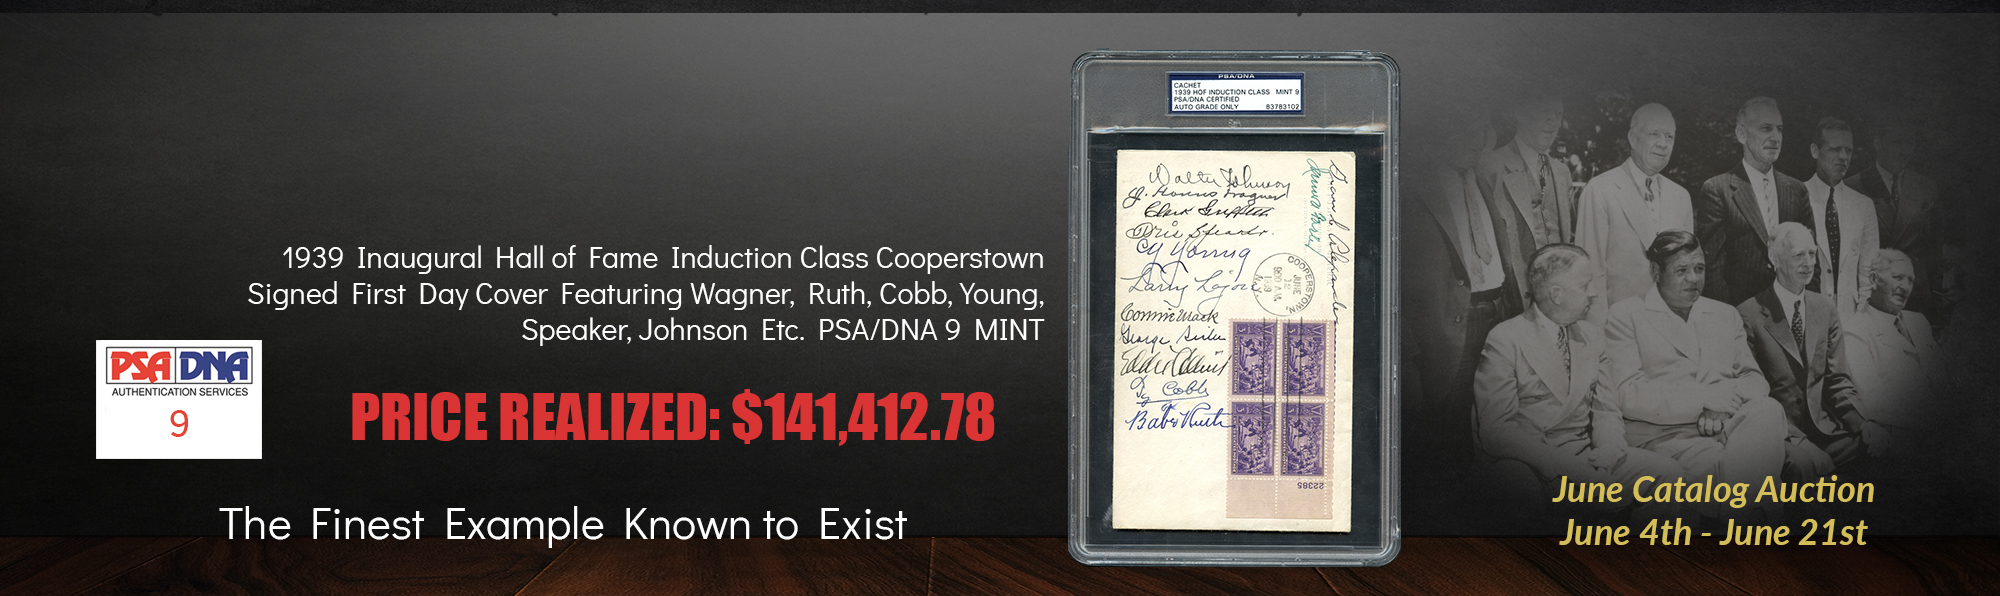 1939 Inaugural Hall of Fame Induction Class Signed First Day Cover Featuring Wagner, Ruth, Cobb, Young, Speaker, Johnson, etc. PSA/DNA 9 MINT